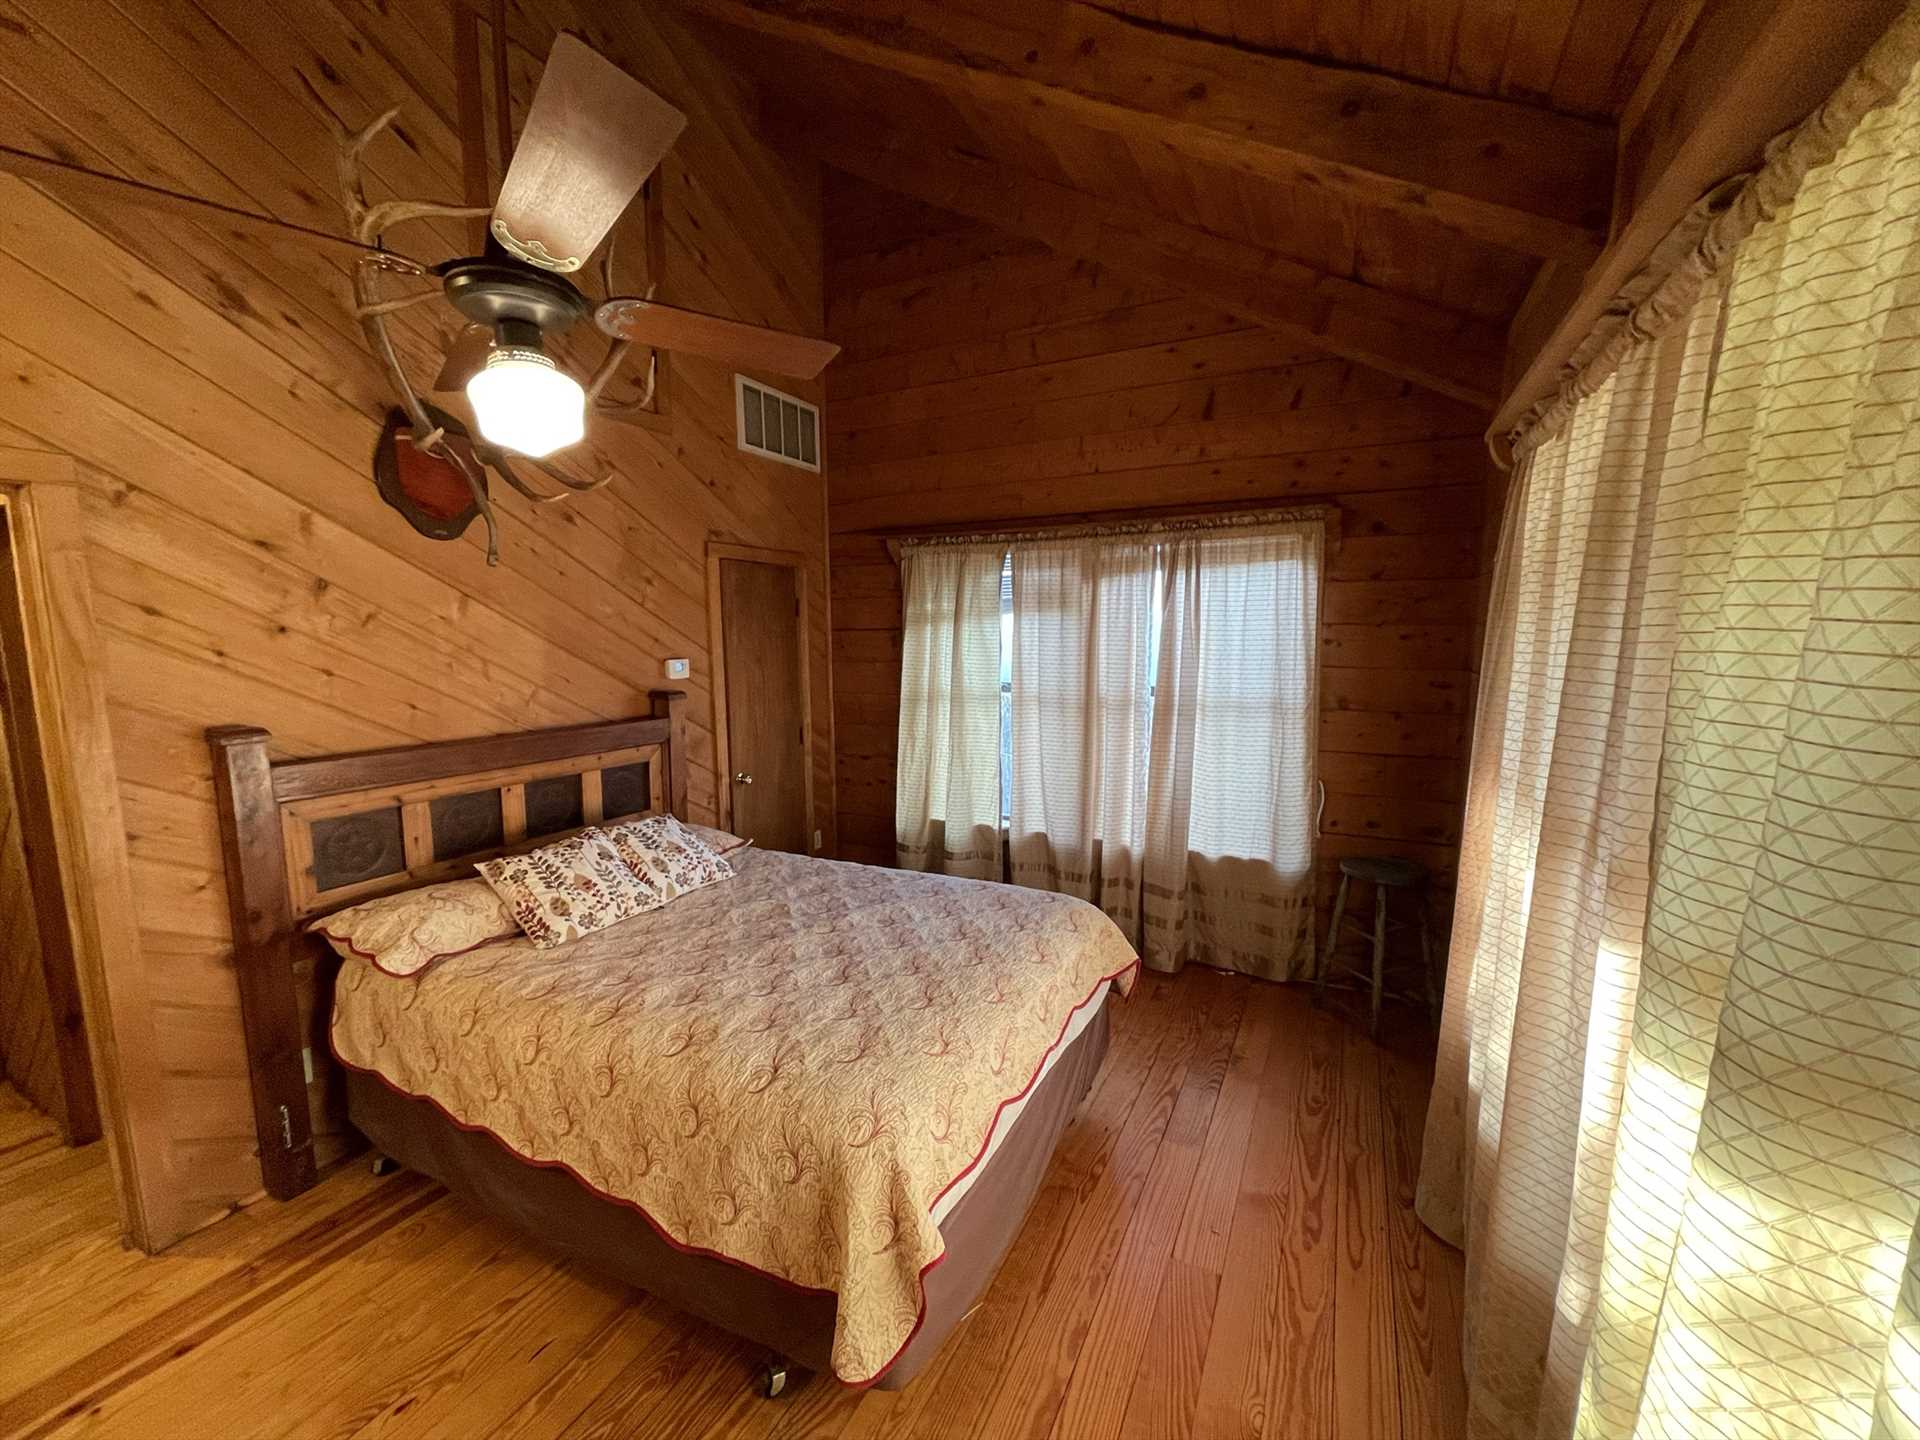 Rest and recharge in the second bedroom, stylishly paneled and decorated, with a plush and comfy double bed.